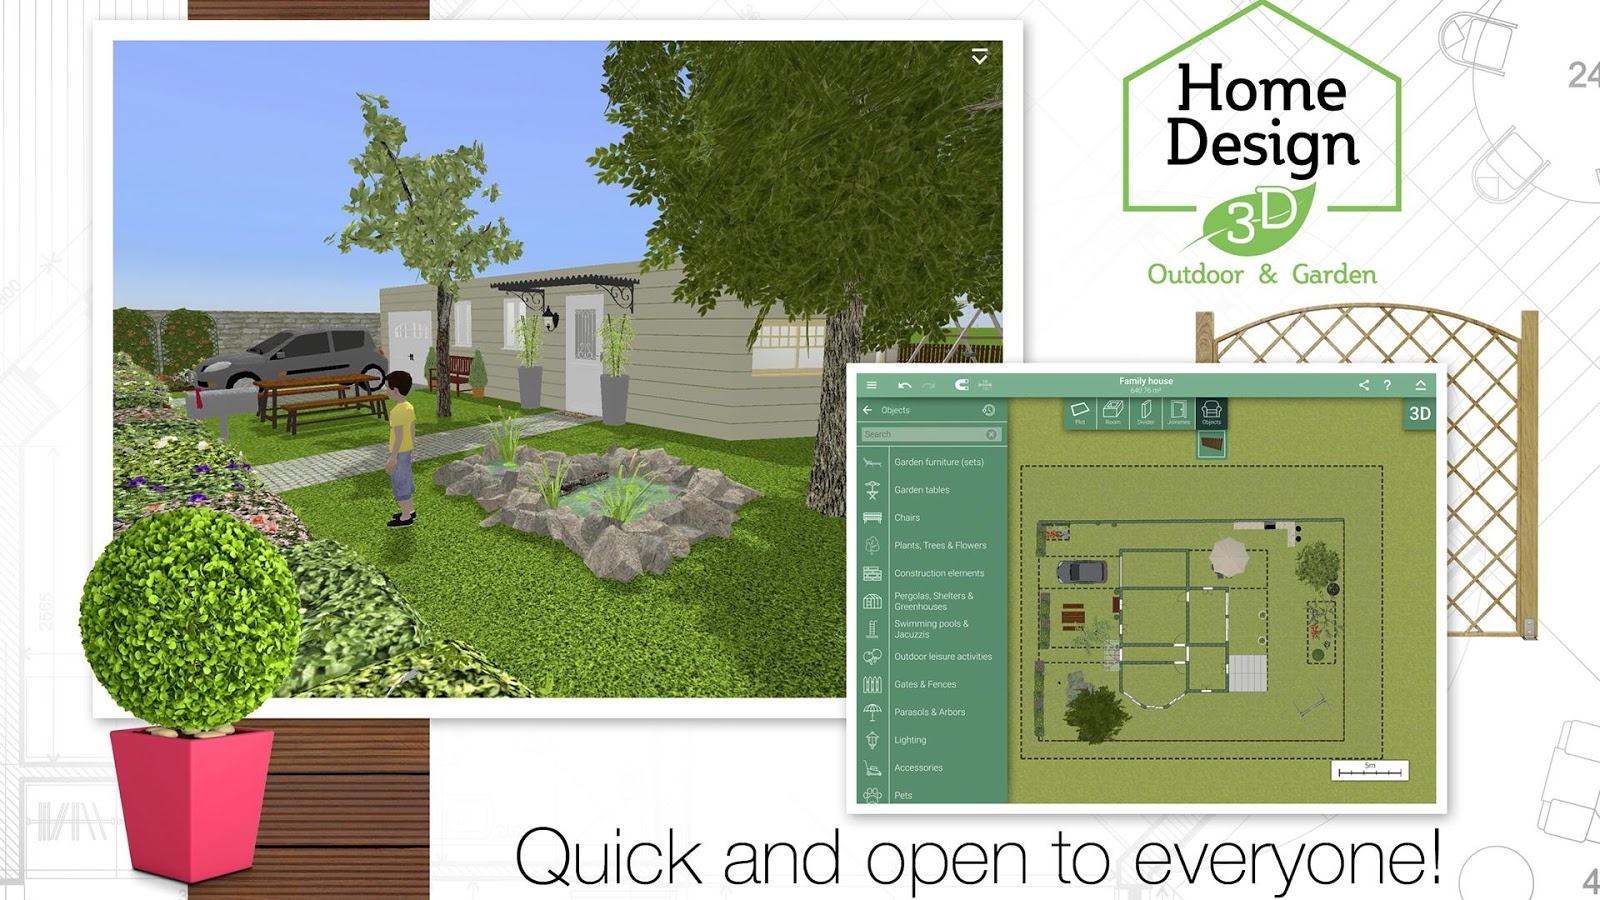 Home design 3d outdoor garden android apps on google play Home design 3d download